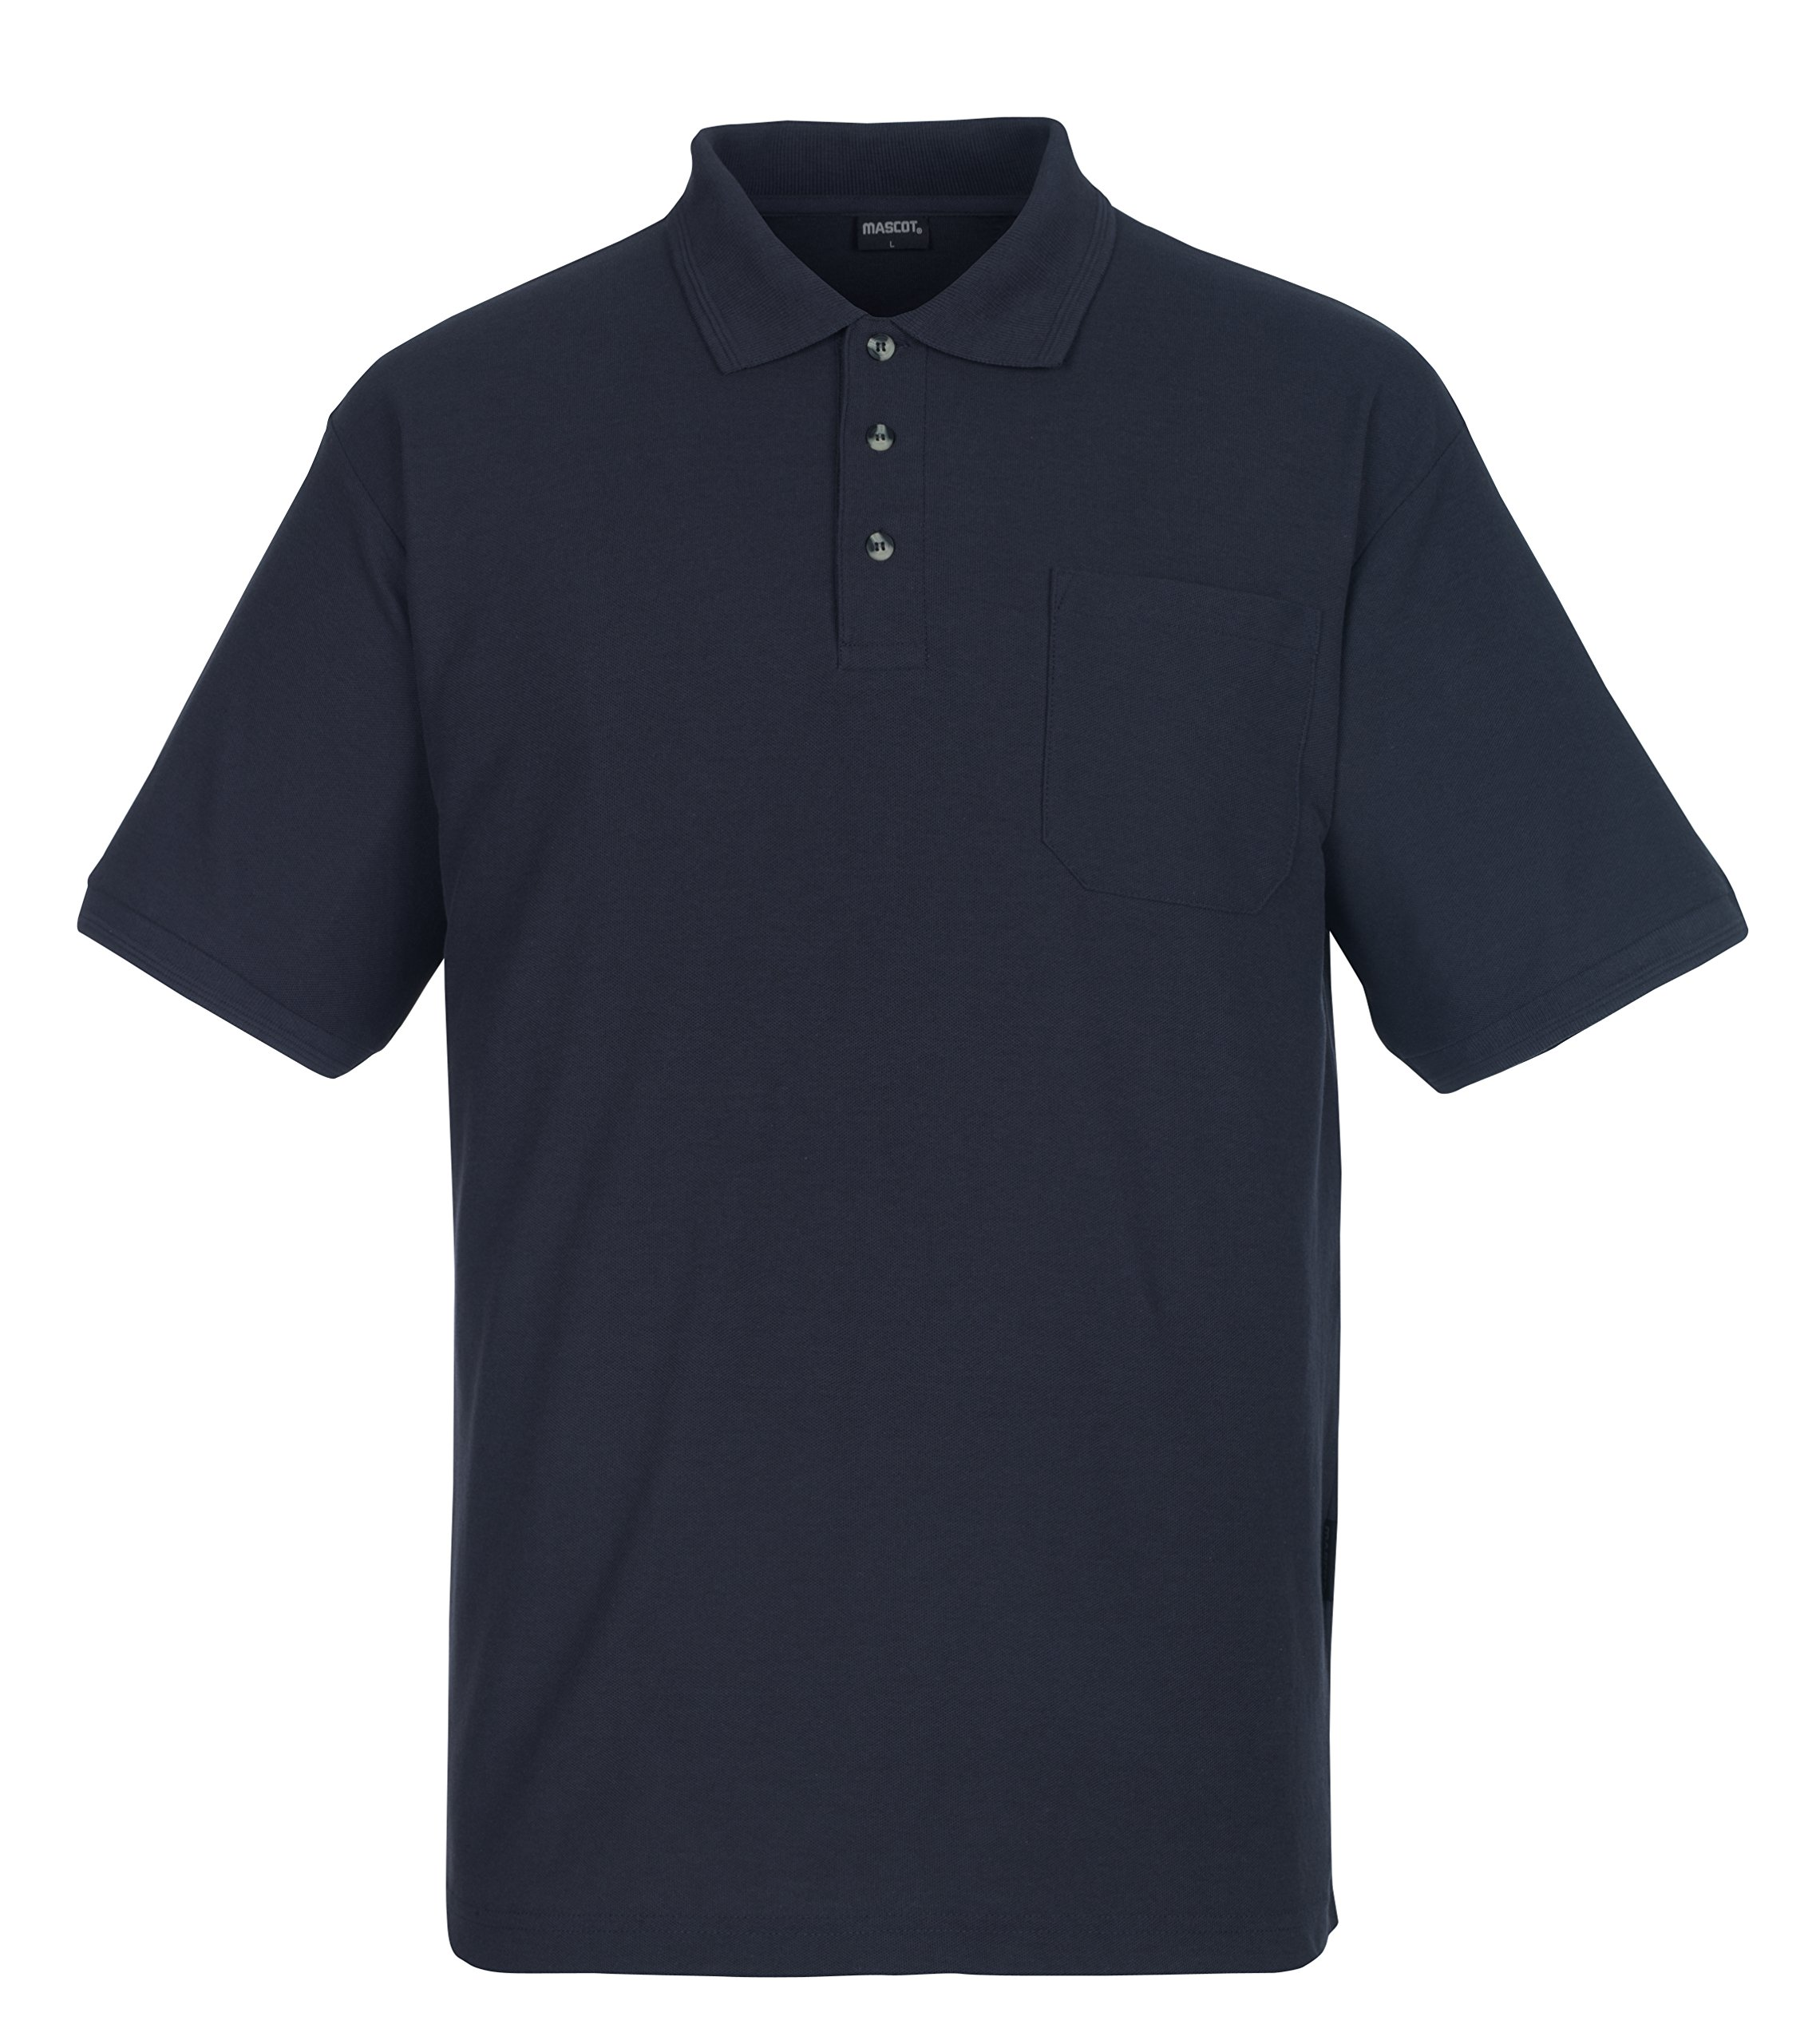 Mascot 00783-260-010-4XL Borneo Polo Shirt, 4X-Large, Dark Blue by Mascot (Image #1)